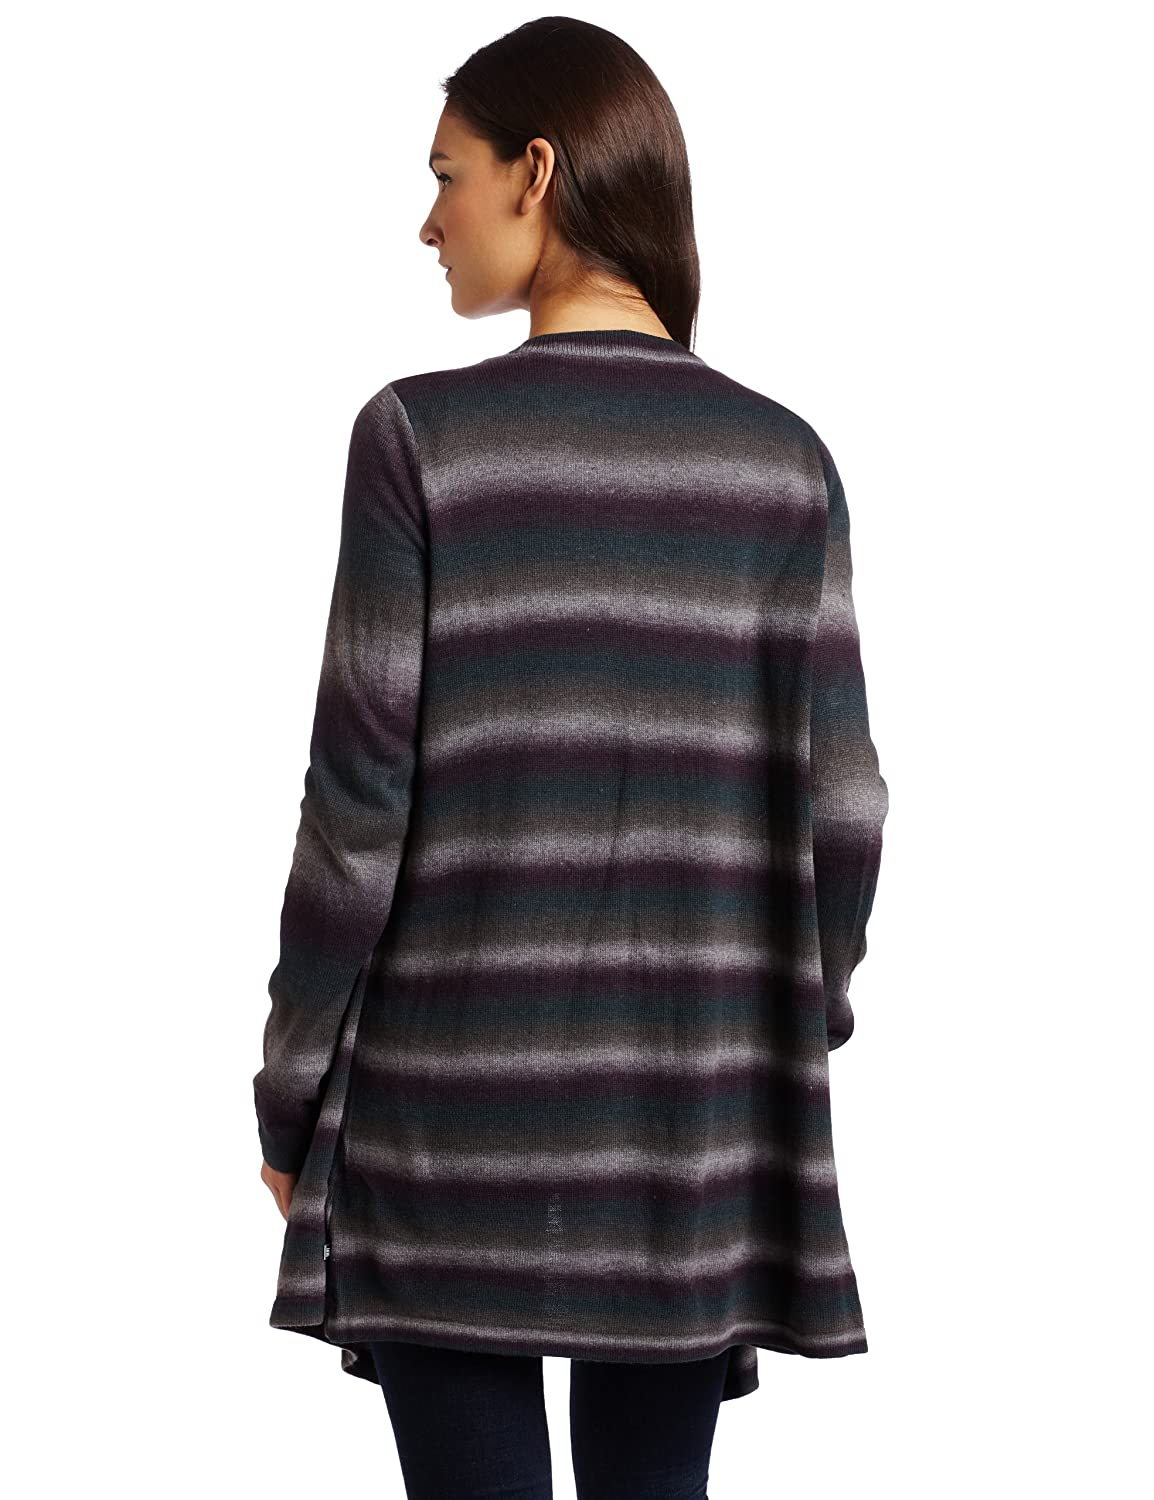 D.E.P.T. Women's Top Knit Wrap Cardigan Sweater